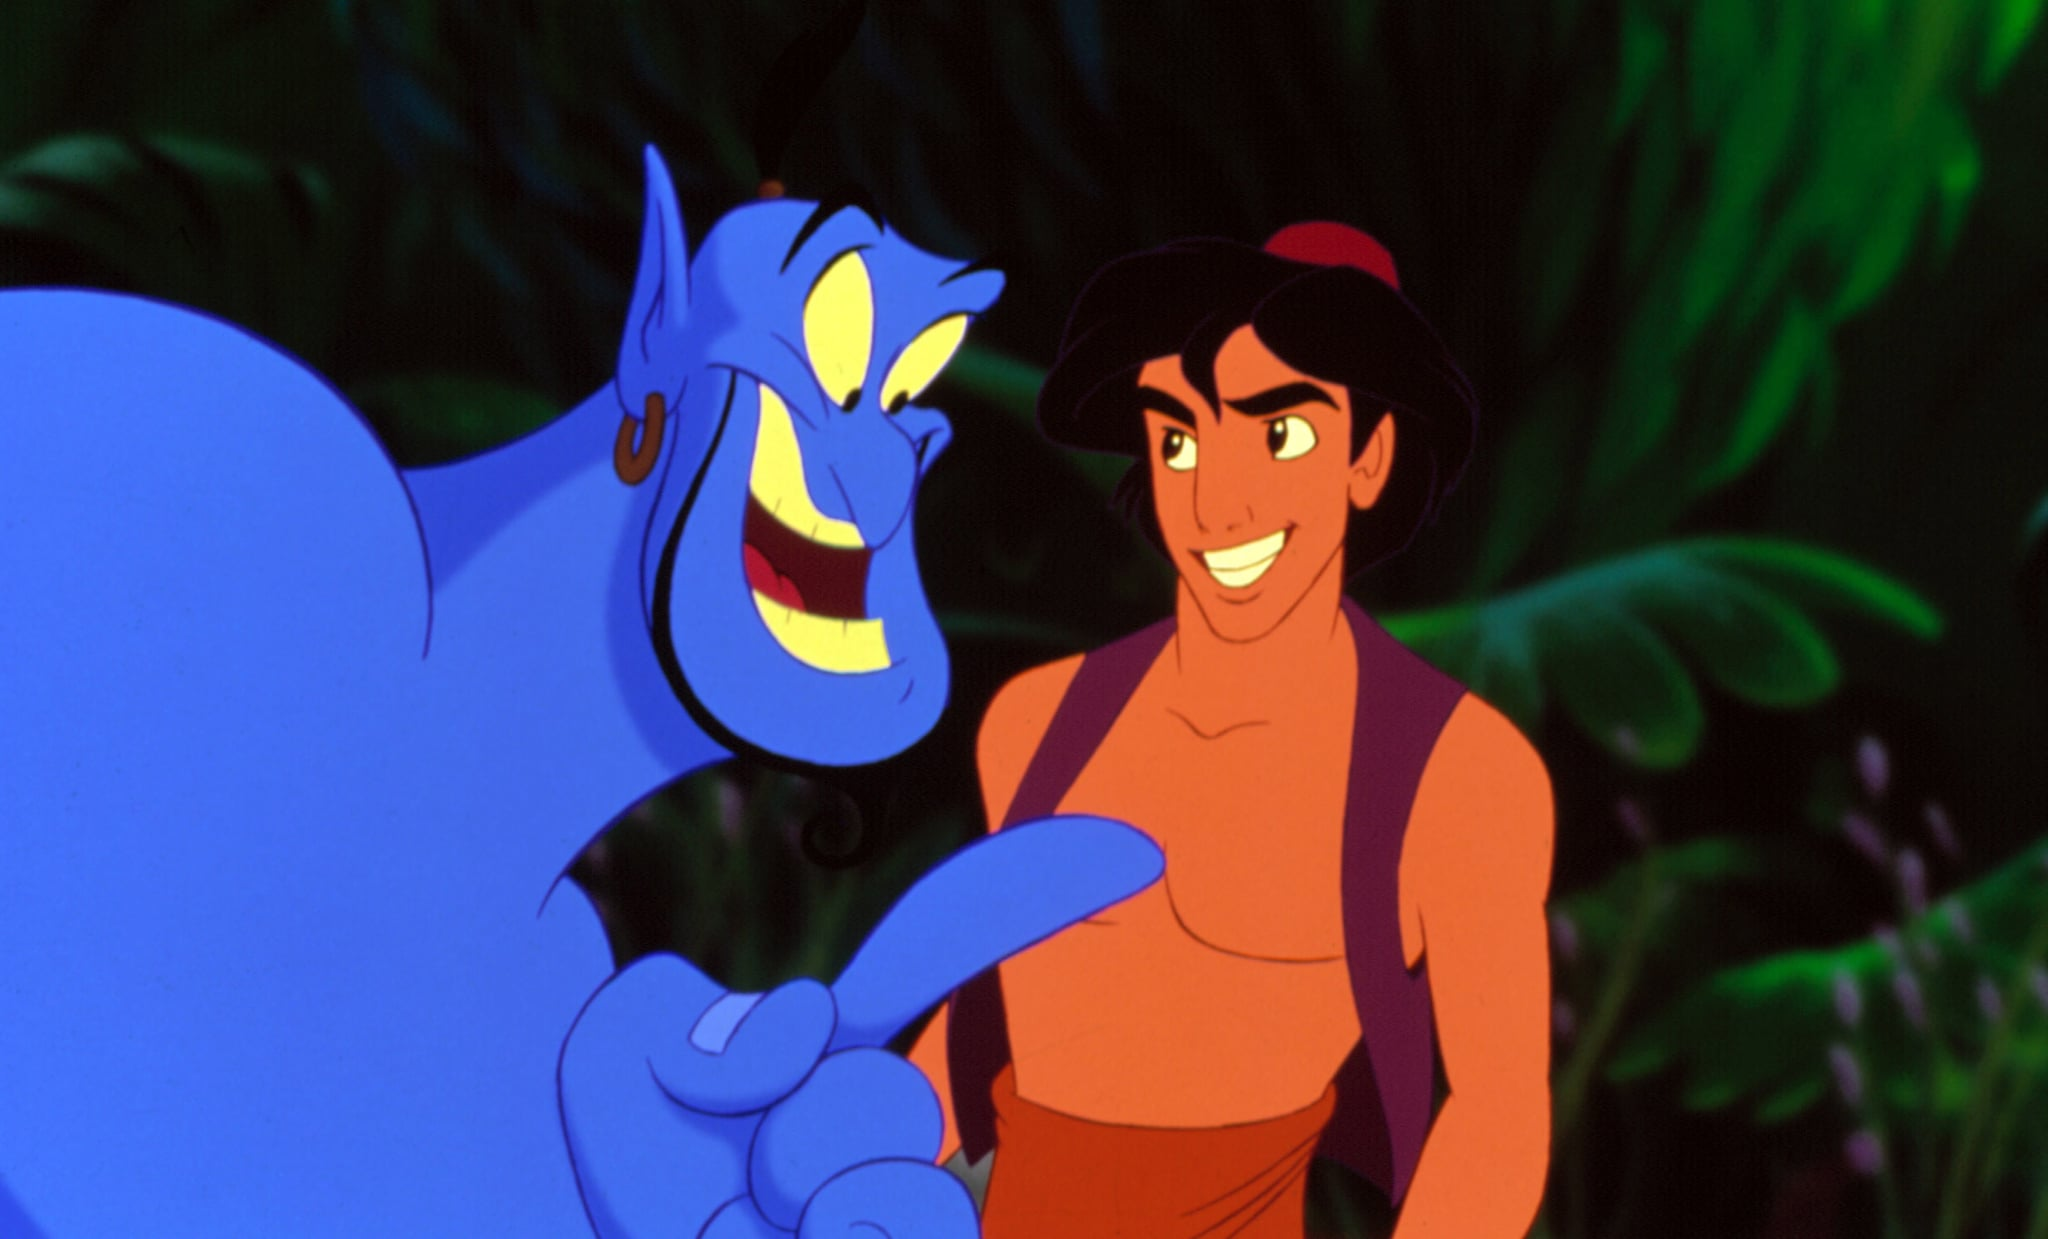 ALADDIN, Genie, Aladdin, 1992. (c) Walt Disney/ Courtesy: Everett Collection.